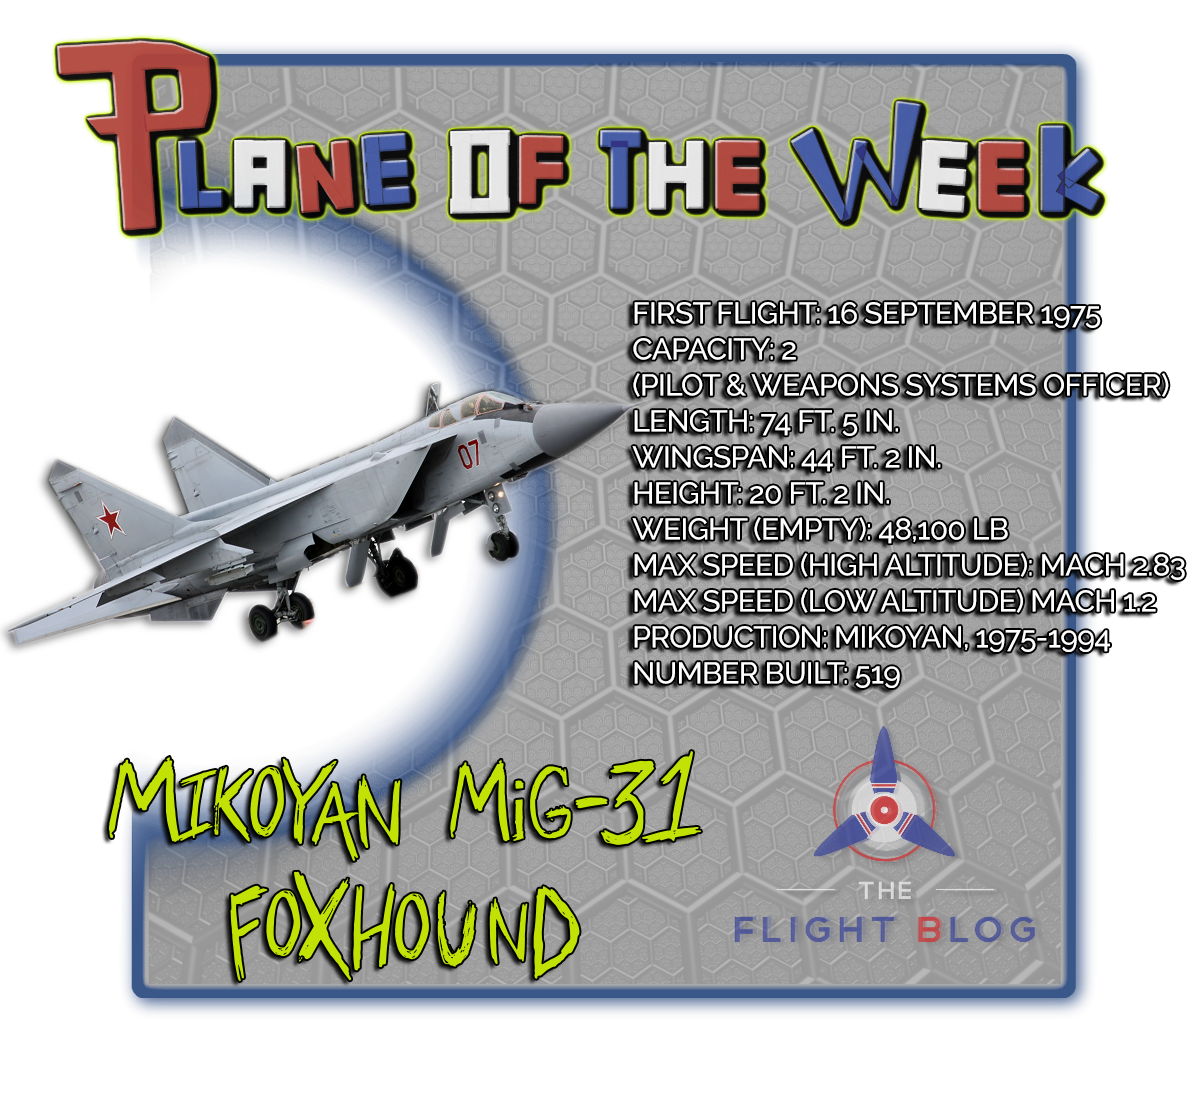 Mikoyan miG-31 Foxhound, supersonic, supersonic interceptor, supersonic interceptor aircraft, MiG-31, Foxhound, plane specs, plane of the week, the flight blog,